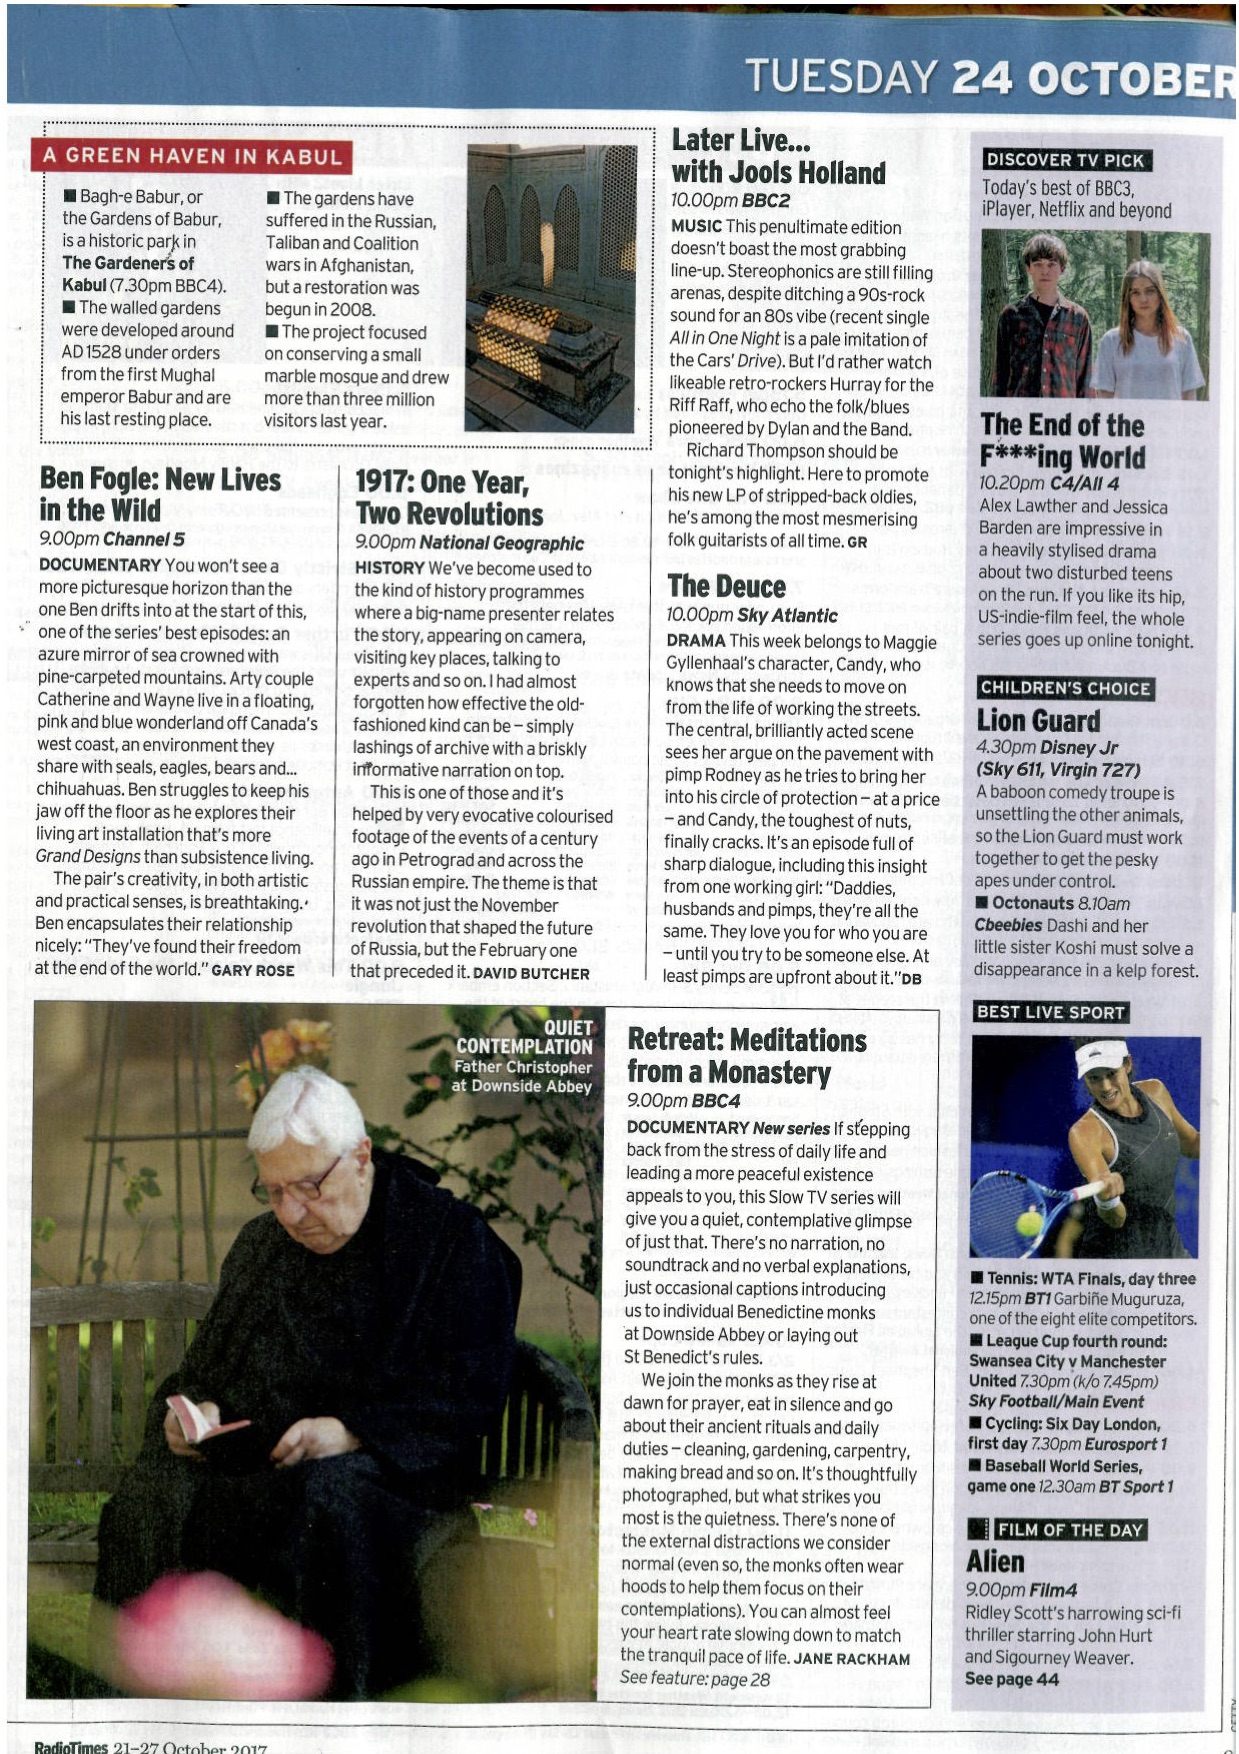 RETREAT_RADIO TIMES 4